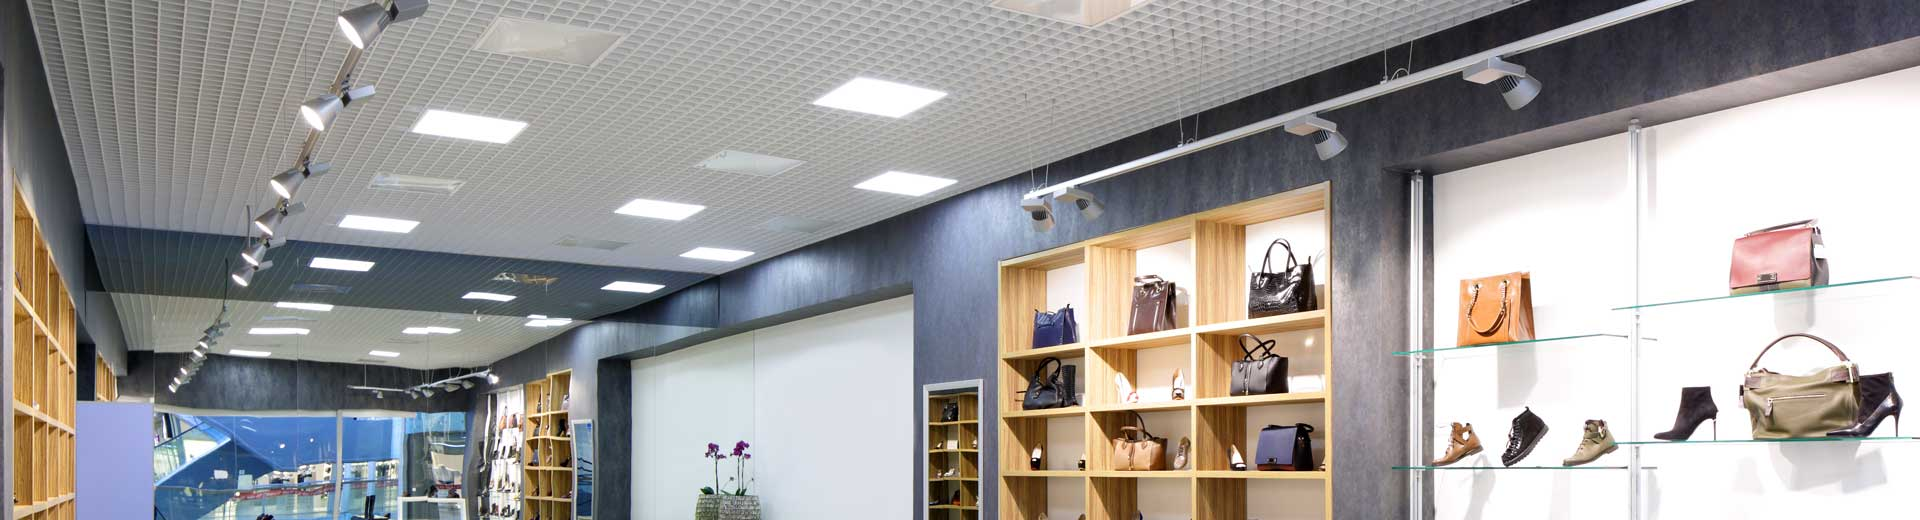 Full range of Retail & Display LED Lighting